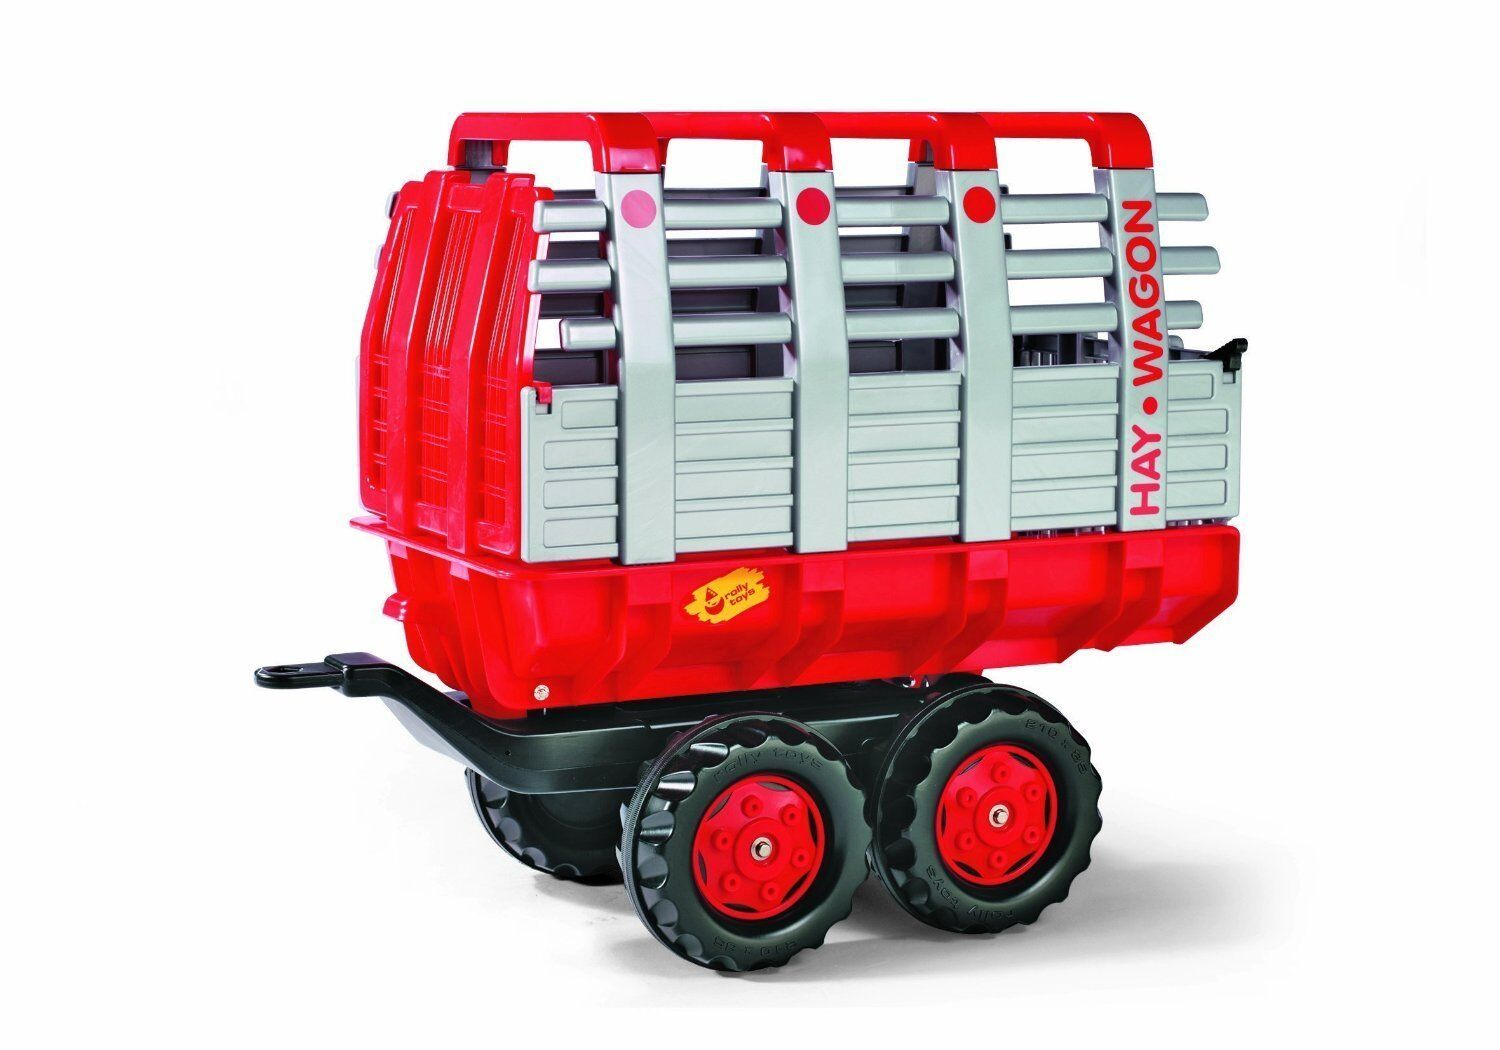 ROLLY and KETTLER Tractor Tractor Tractor HAY WAGON Trailer BRAND NEW NIB 600636